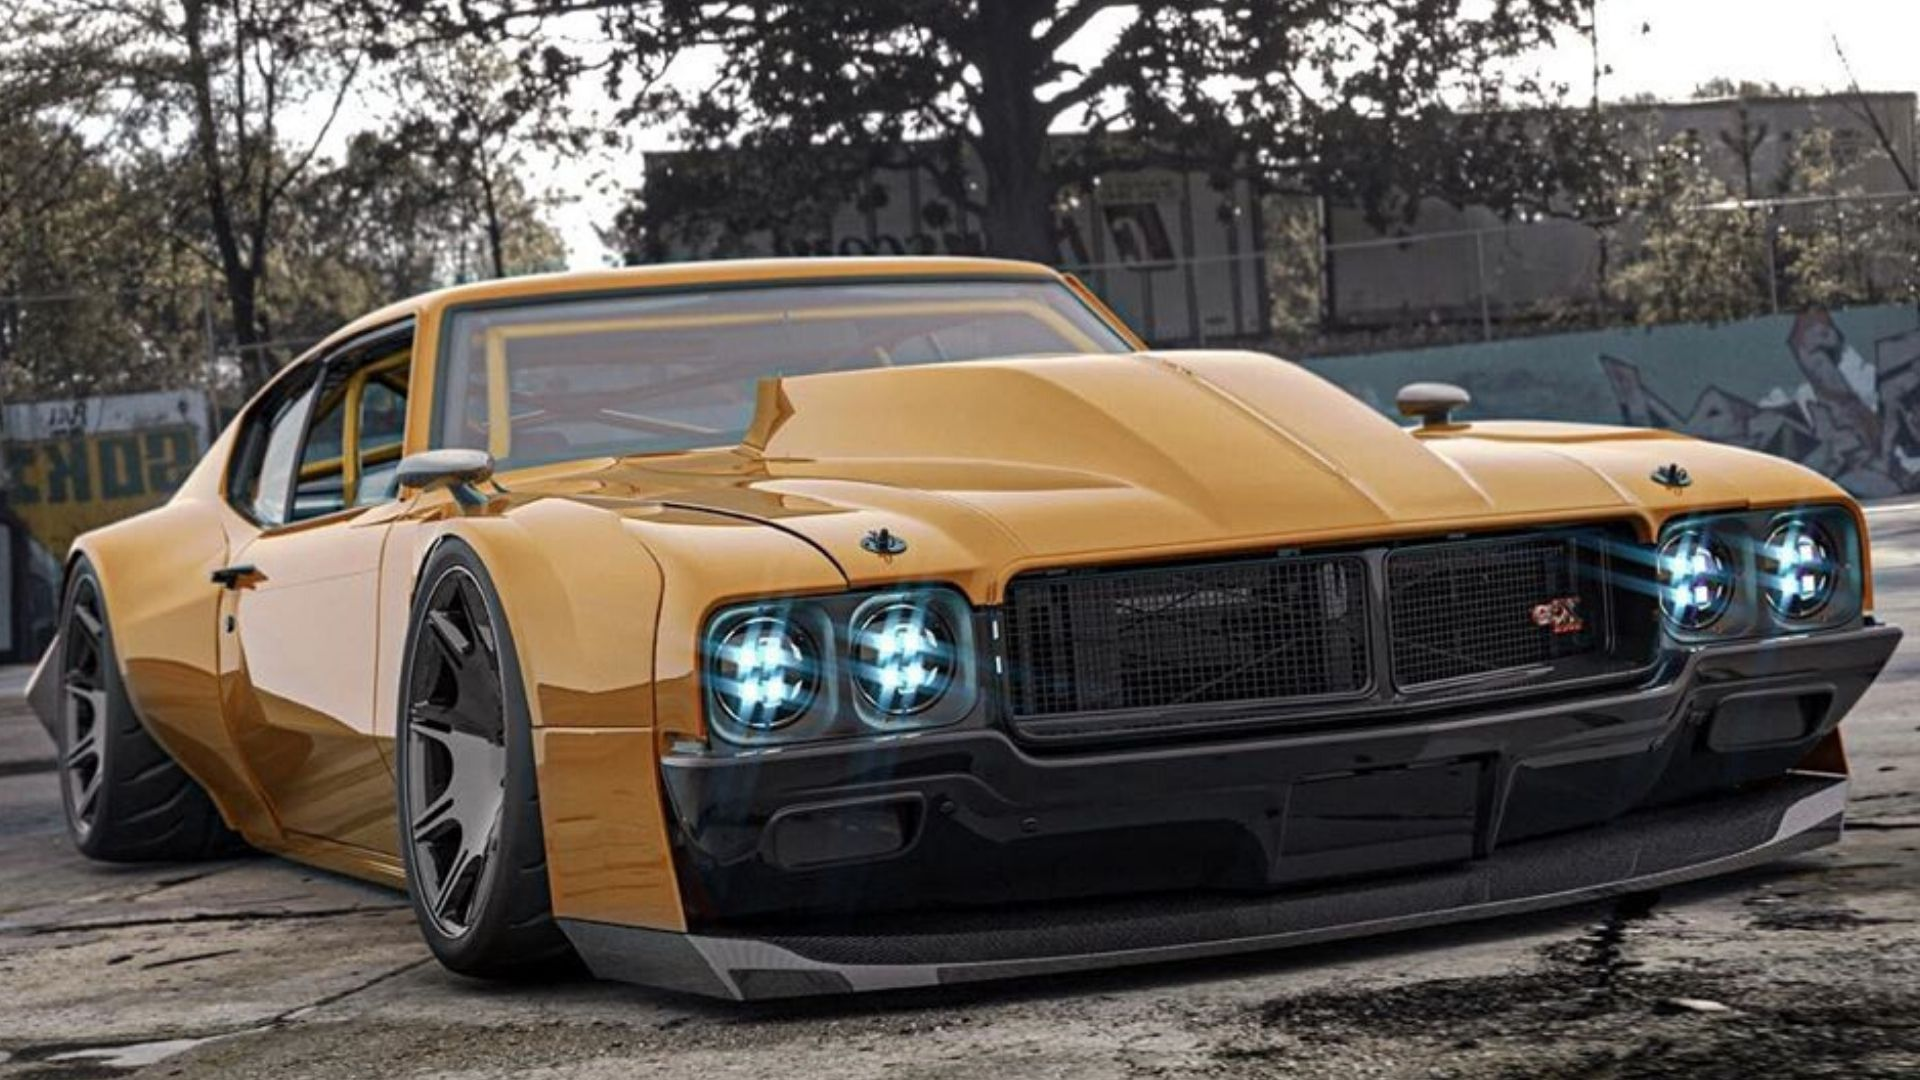 What Do You Think Of This Widebody 1970 Buick GSX?